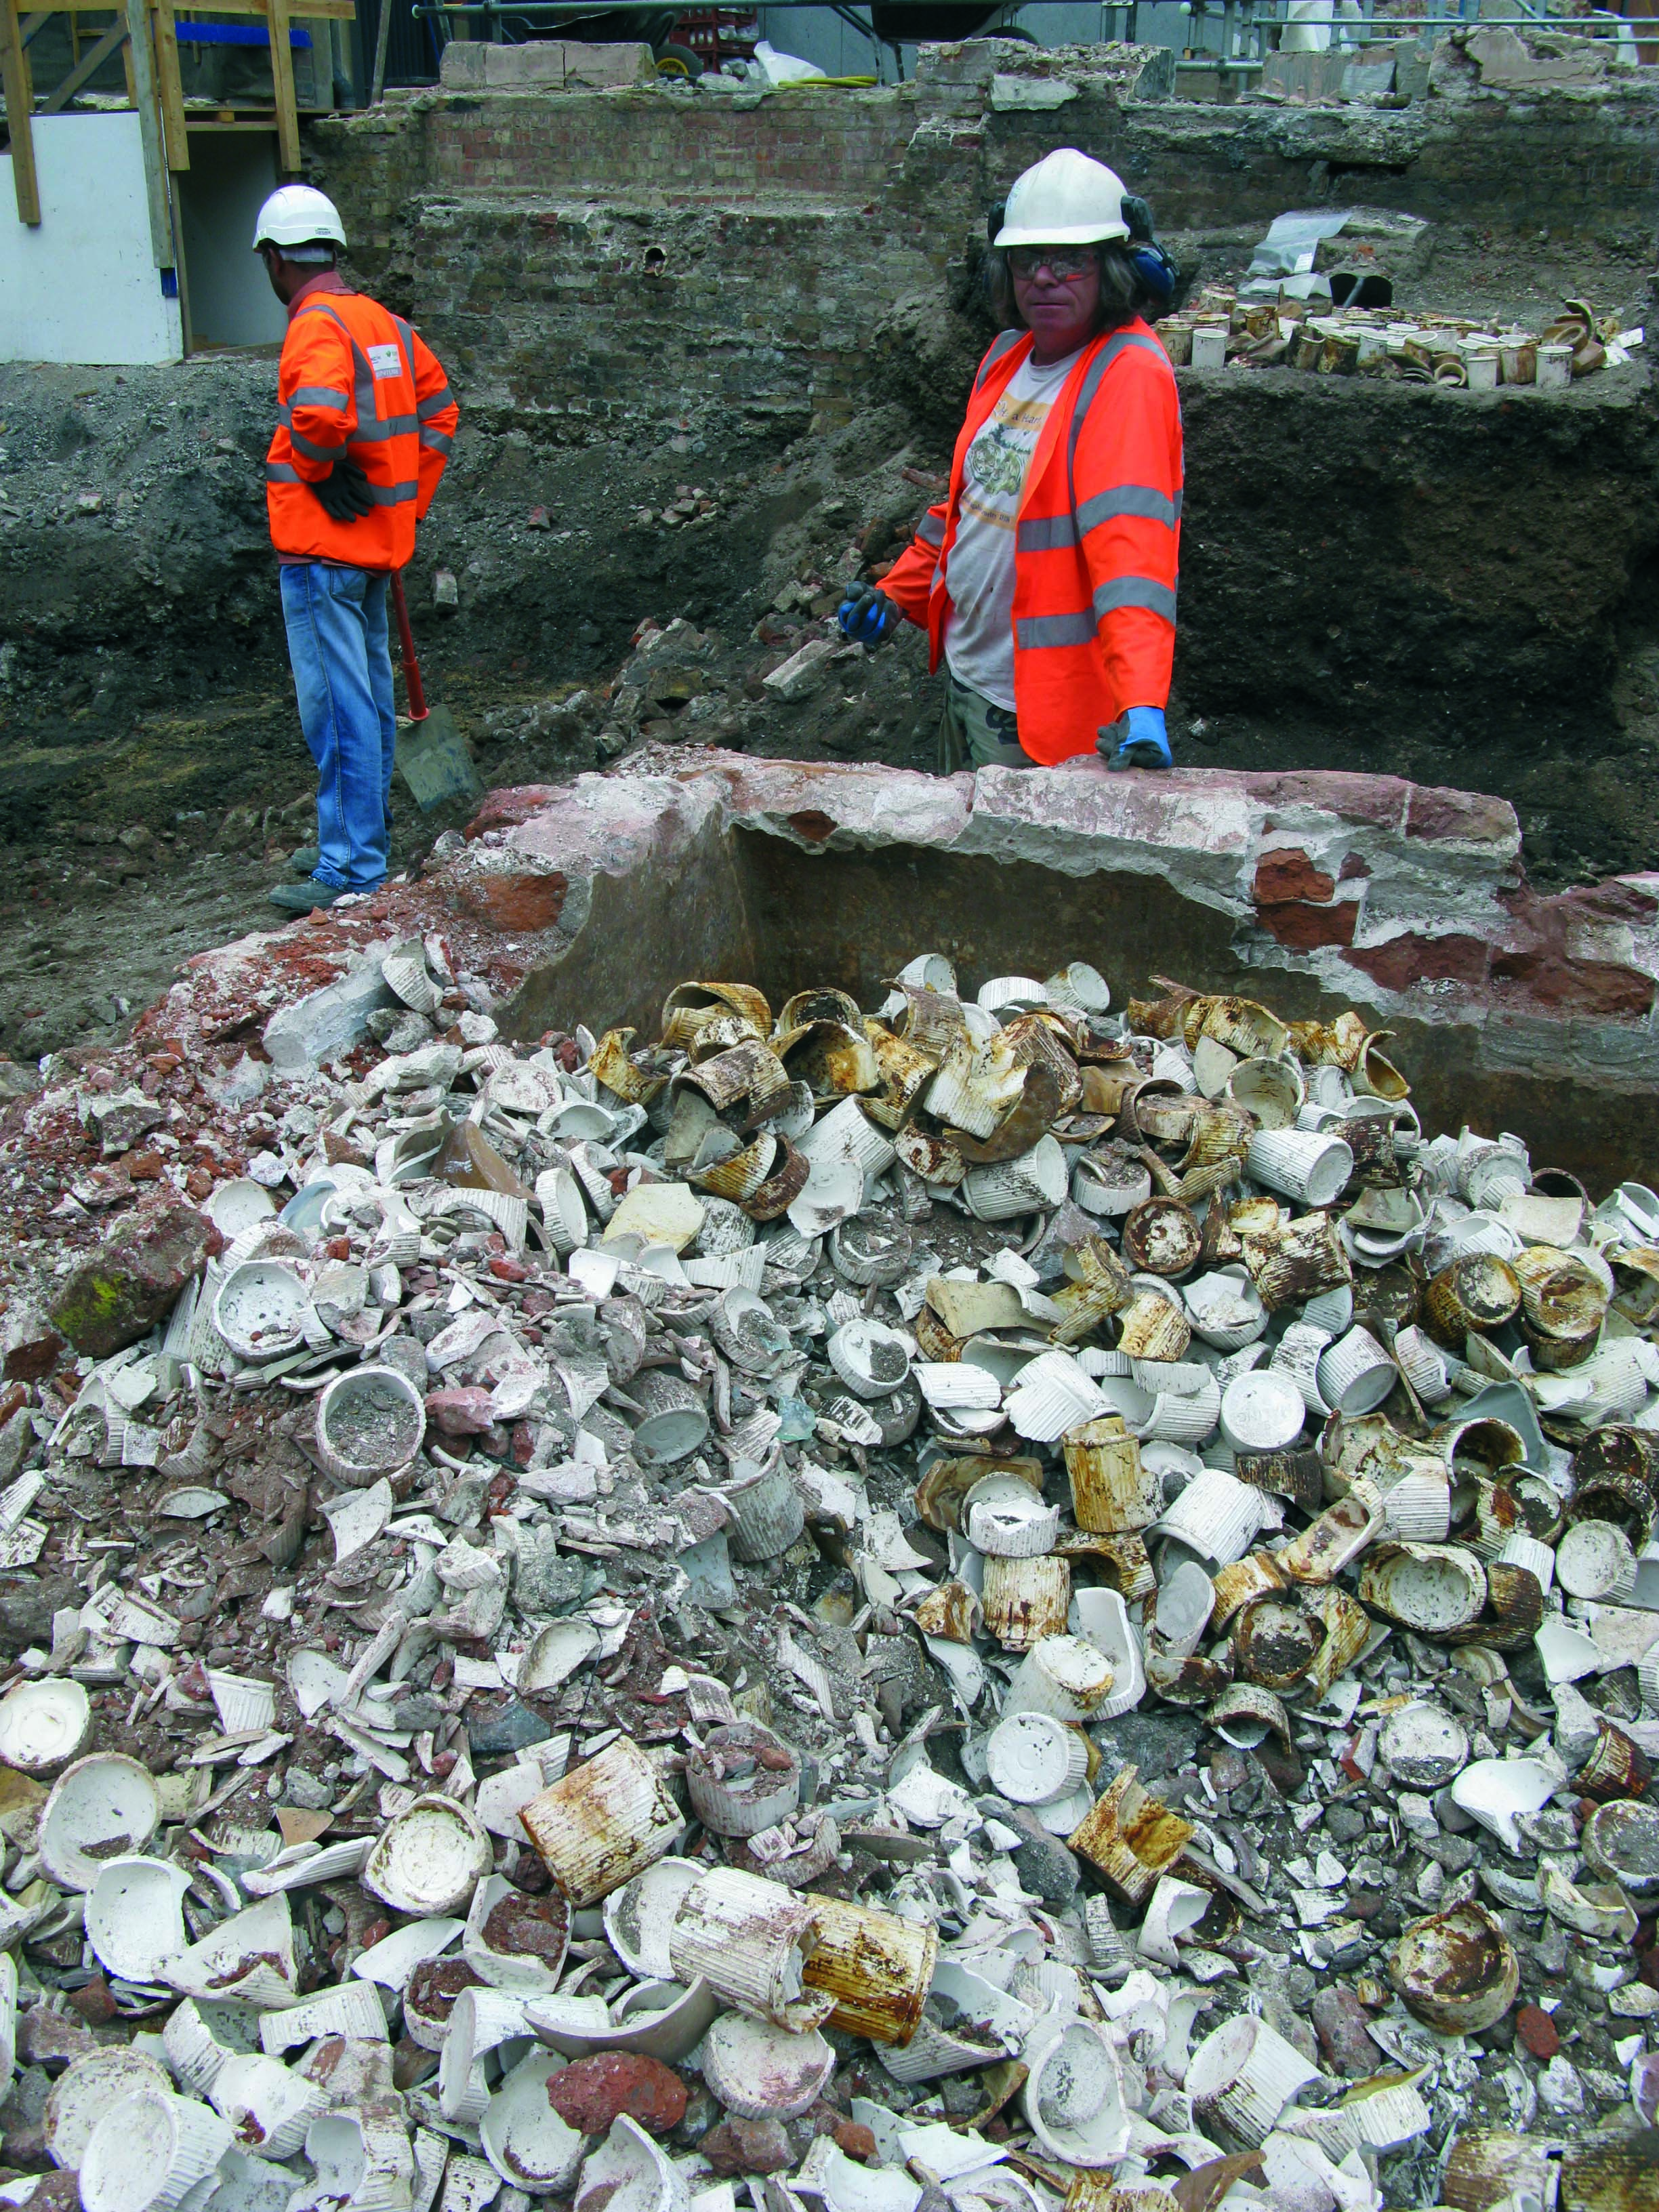 MOLA Archaeologists discover a large number of finds at the Tottenham Court Road site (c) Crossrail